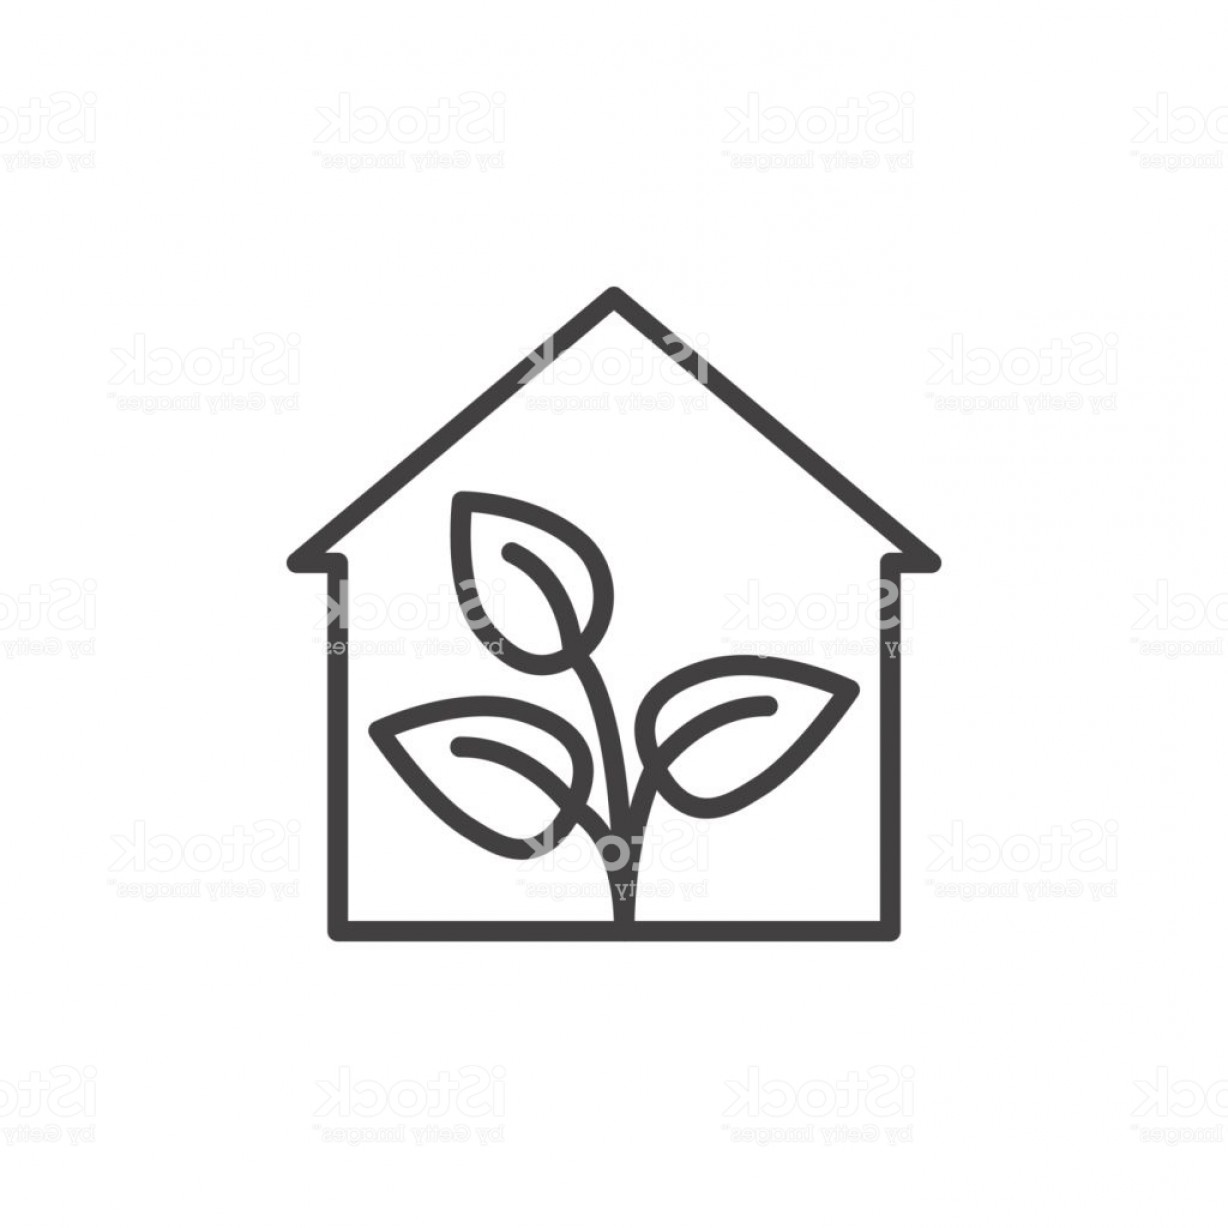 Black And White Vector Greenhouse: Greenhouse Line Icon Outline Vector Sign Linear Style Pictogram Isolated On White Gm